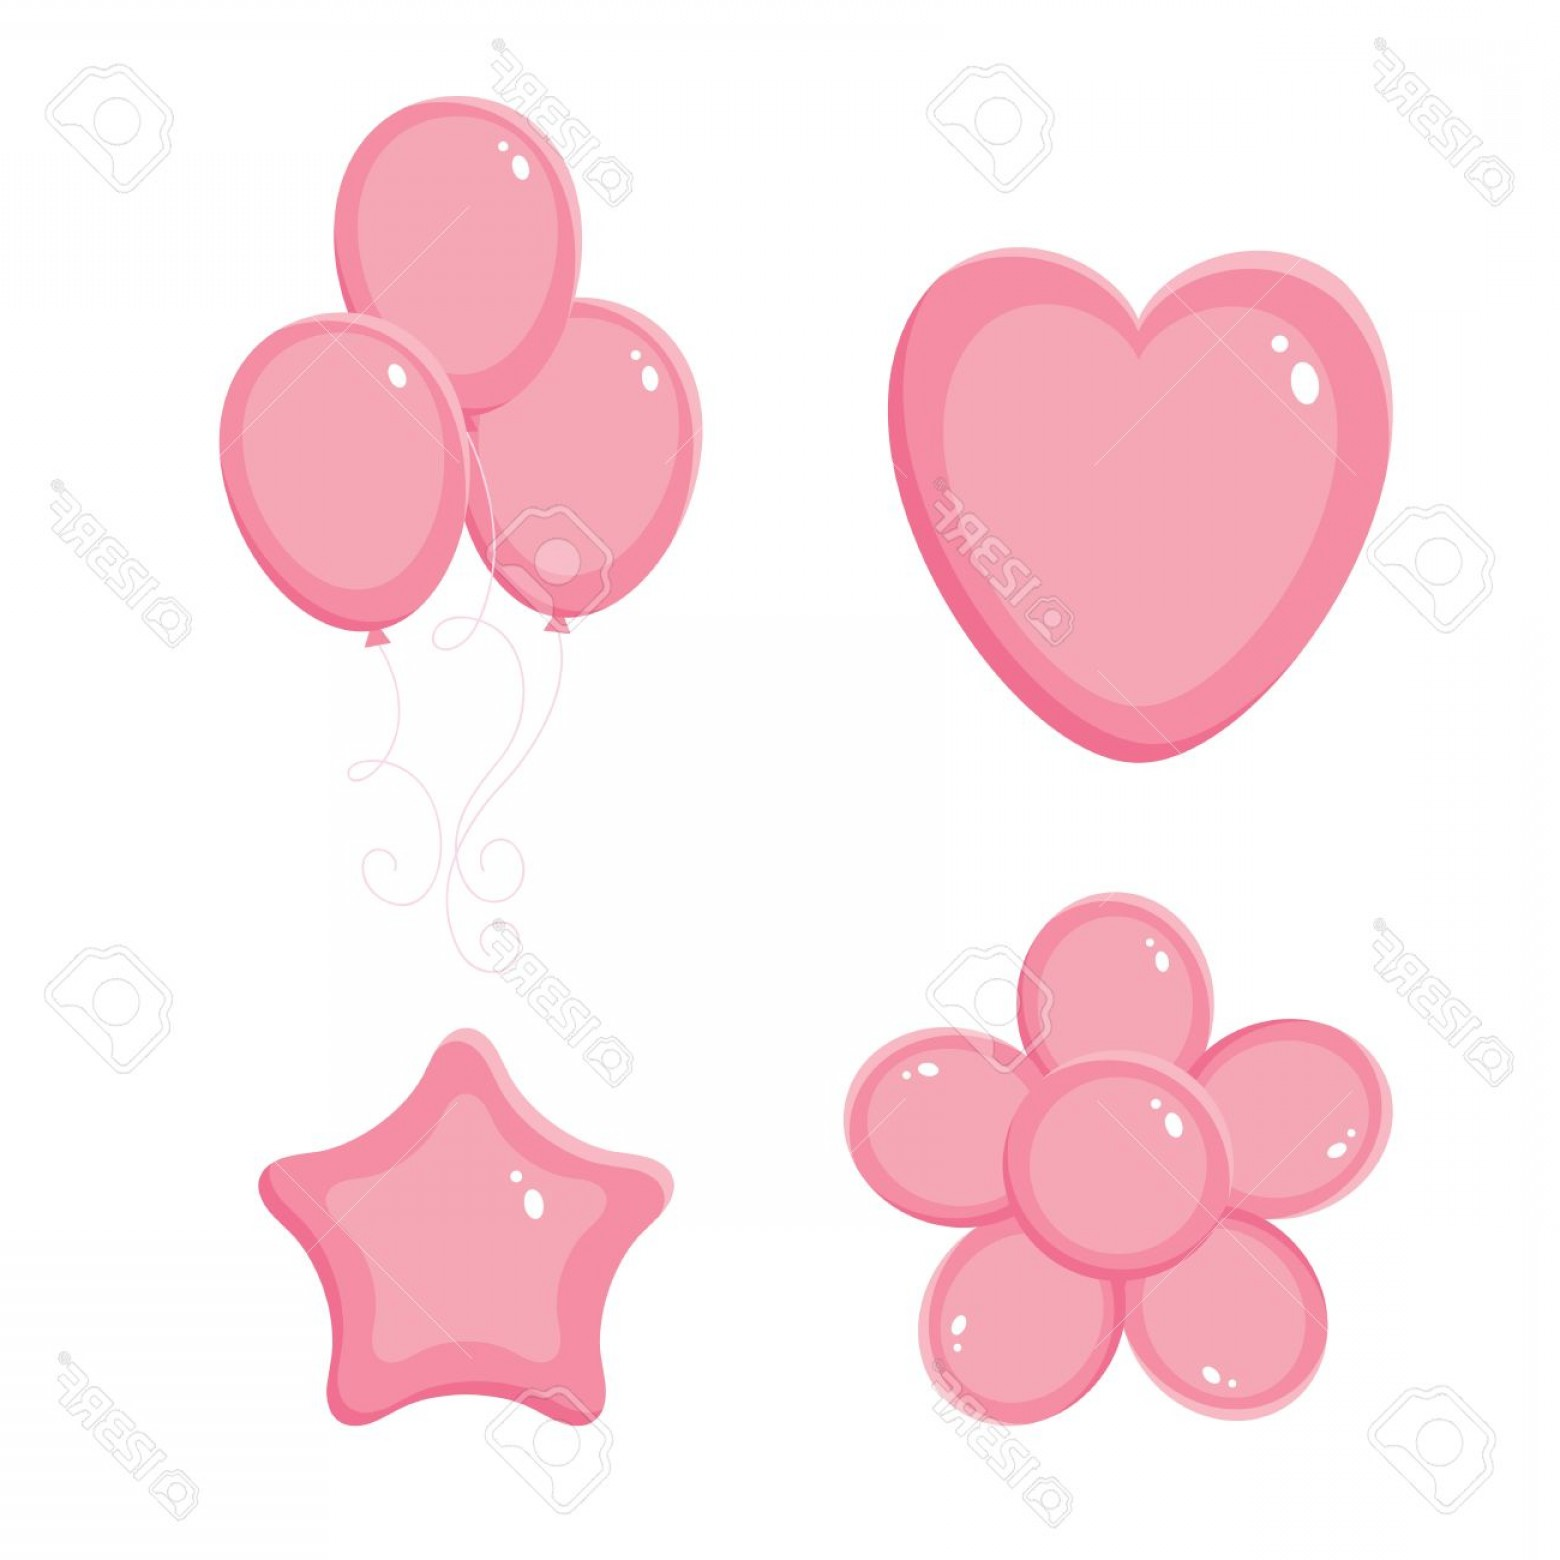 Vectors Heart And Star: Photopink Shiny Balloons Heart Flower And Star